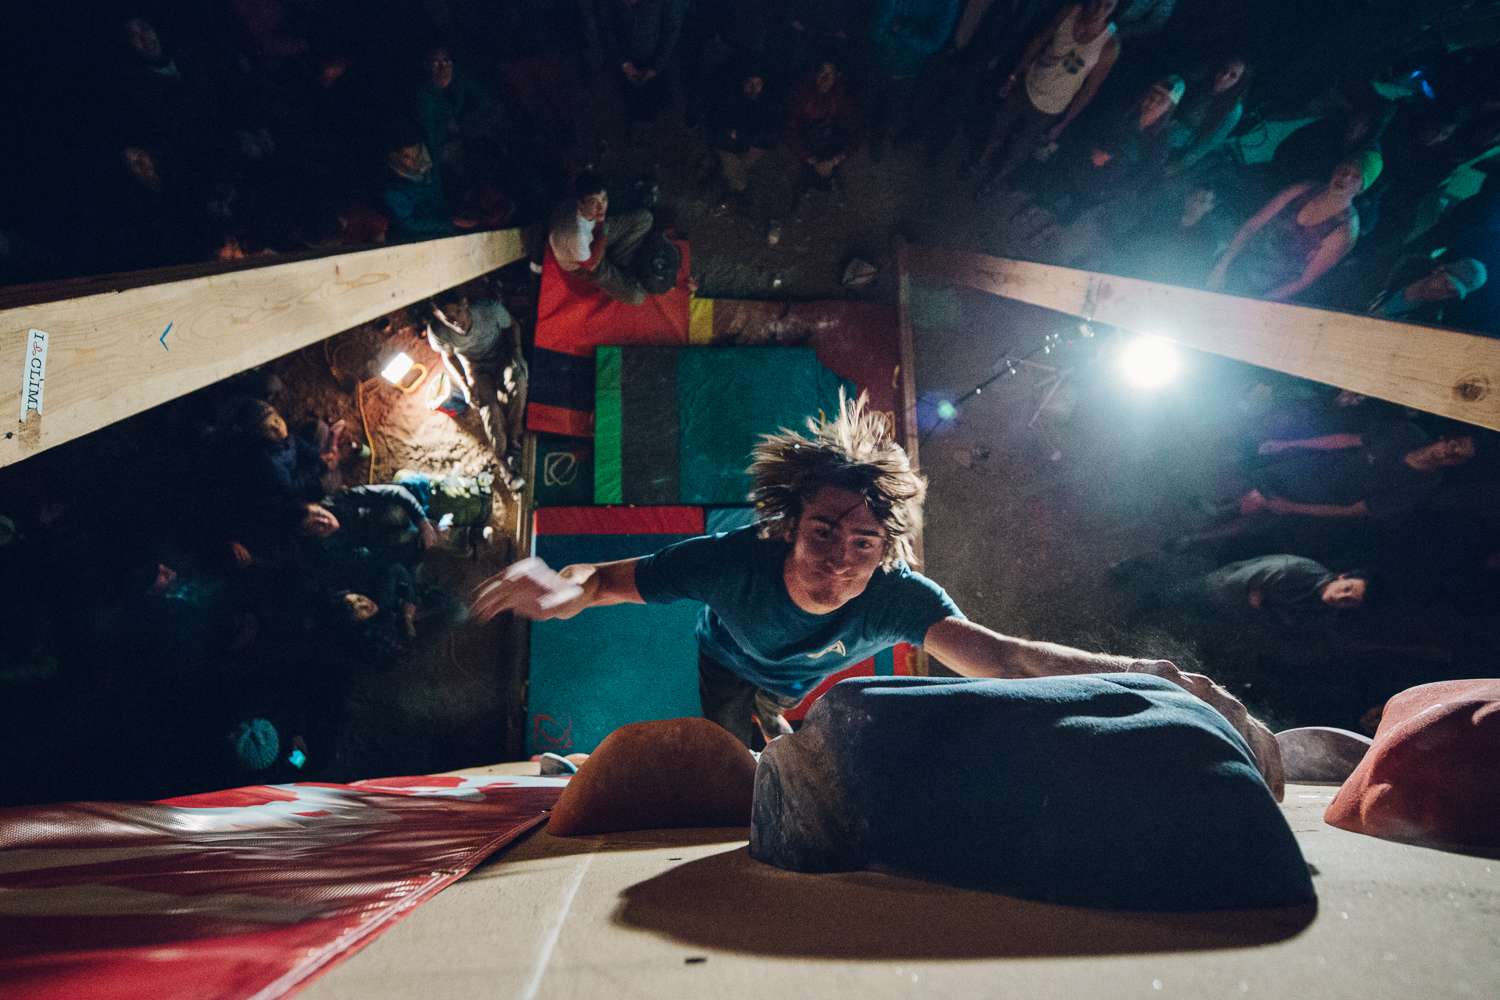 Alex McIntyre sticking the final hold to win the Dyno-Competition of the 22nd Annual Rock Rodeo of 2015 put on by the American Alpine Club. Michael Lim Photography 2015 ©